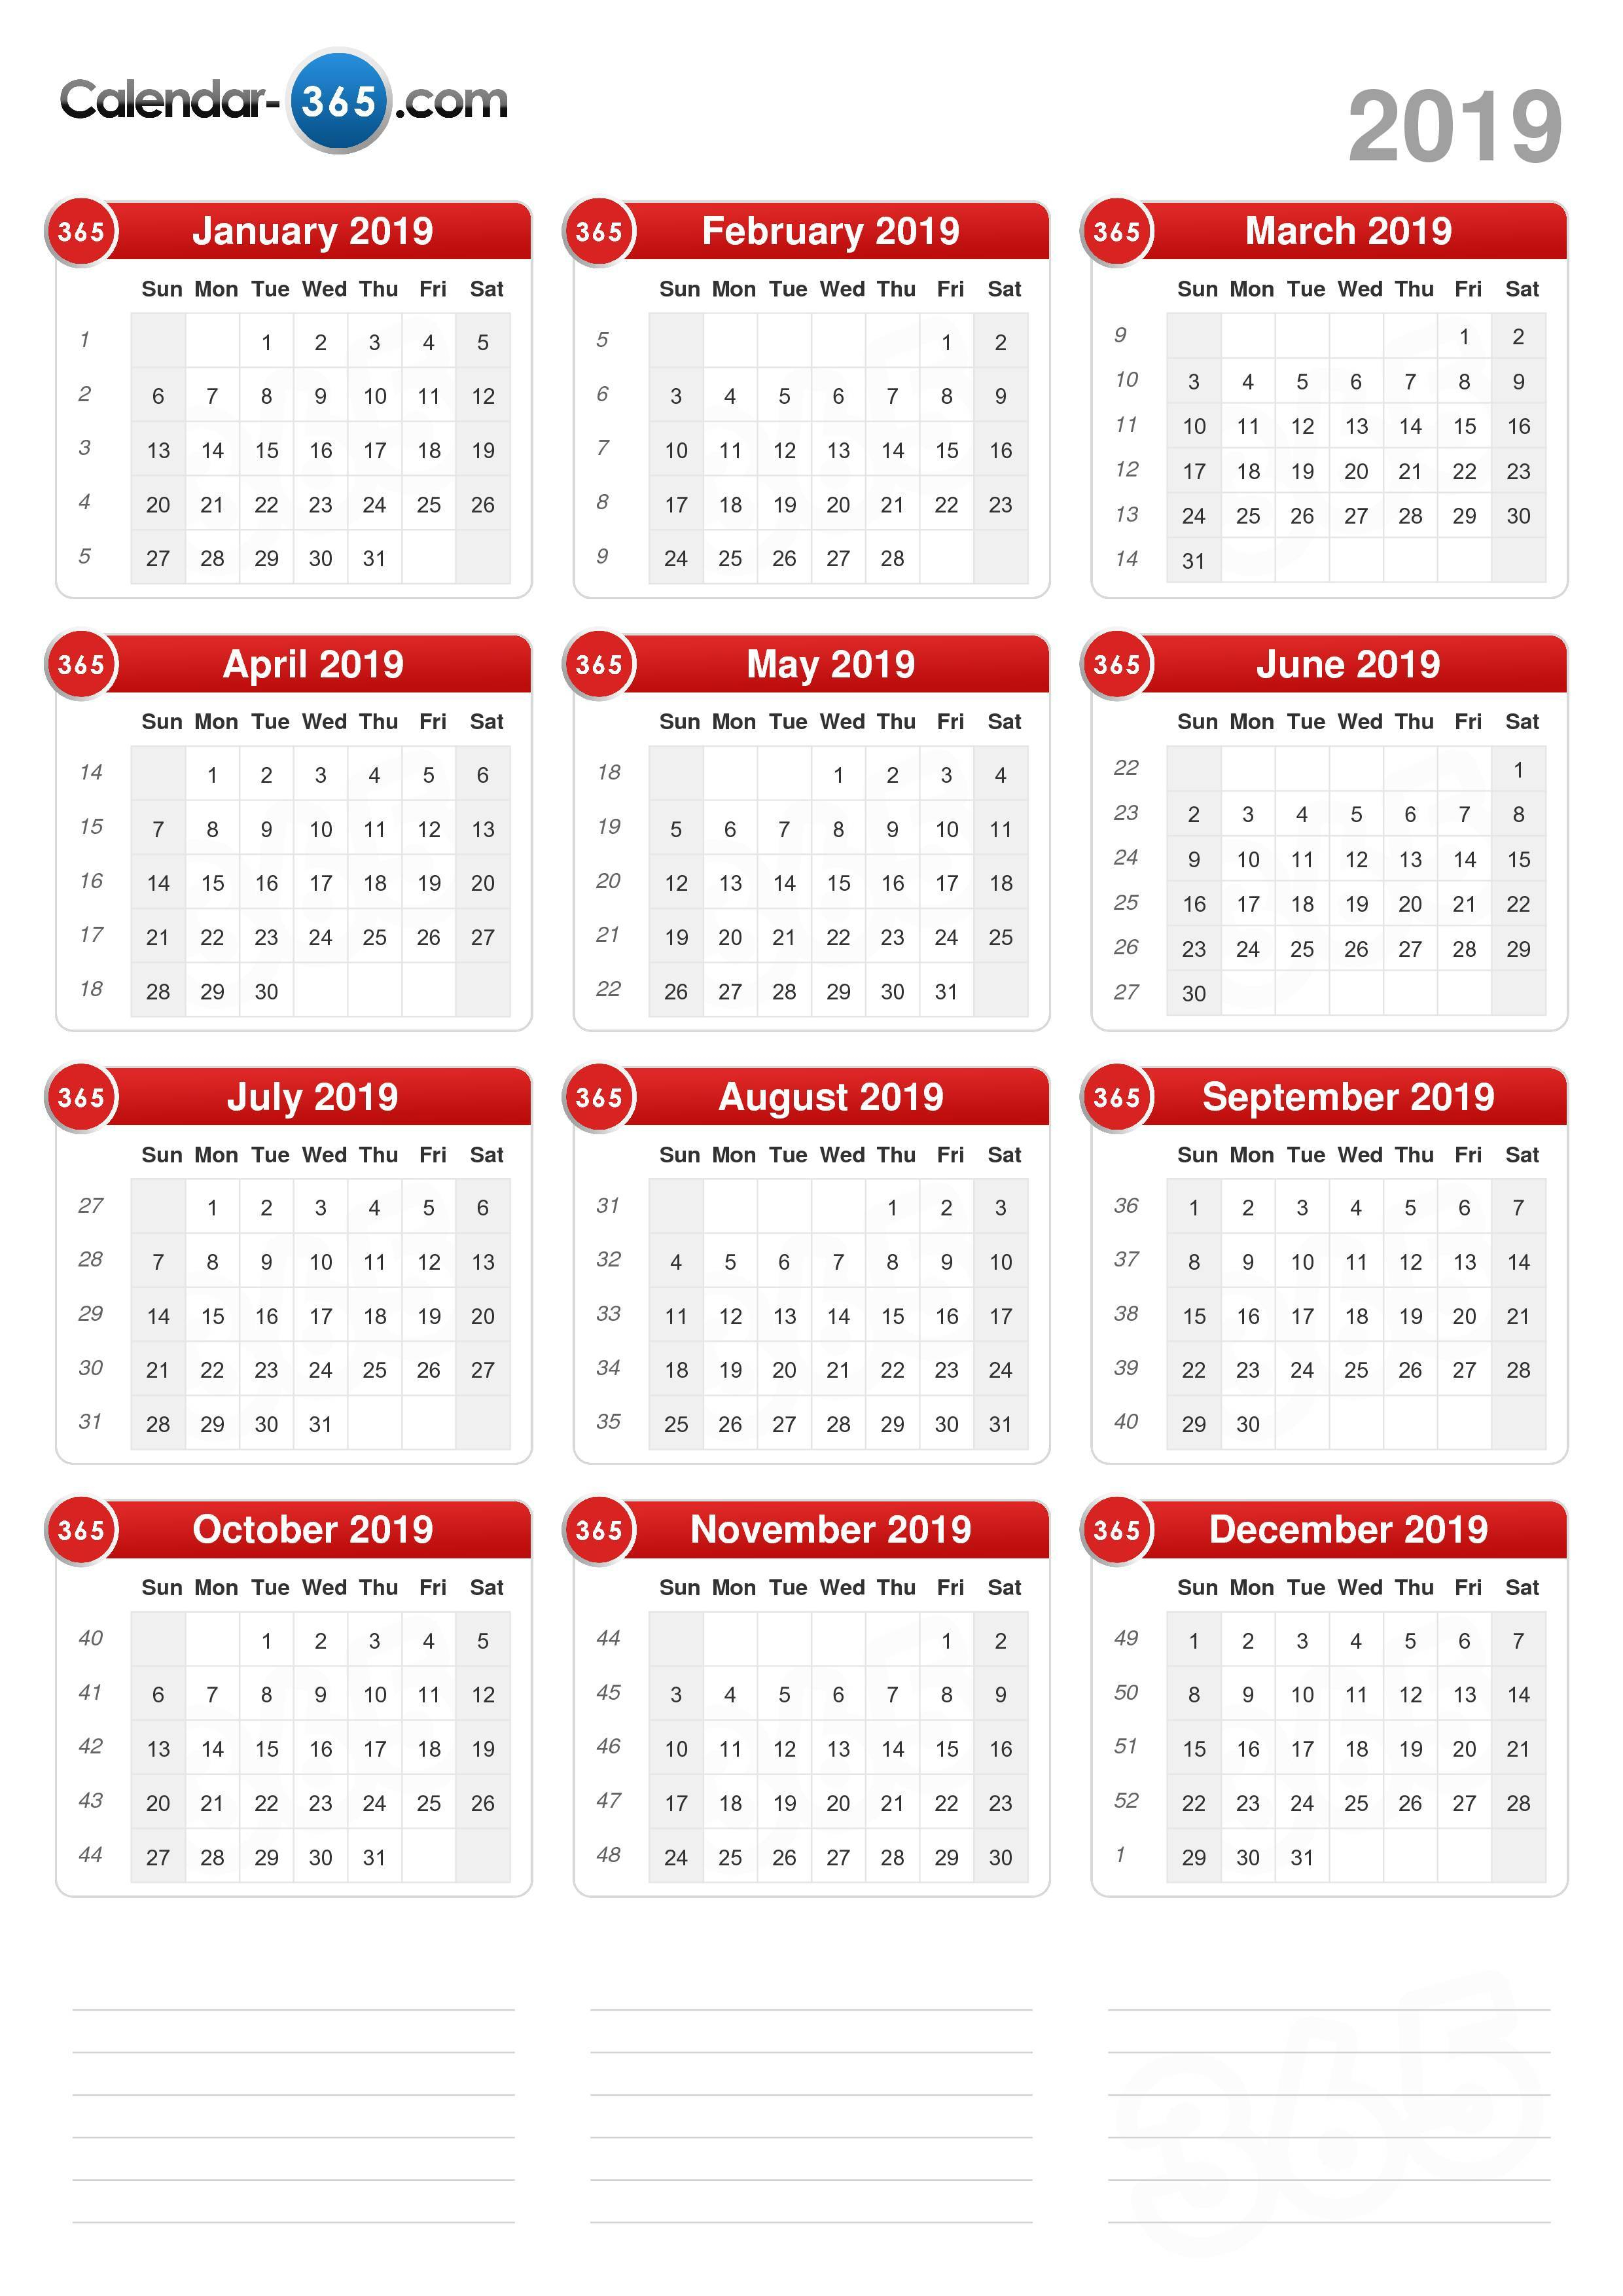 2019 Calendar intended for Blank Time And Date Calendar